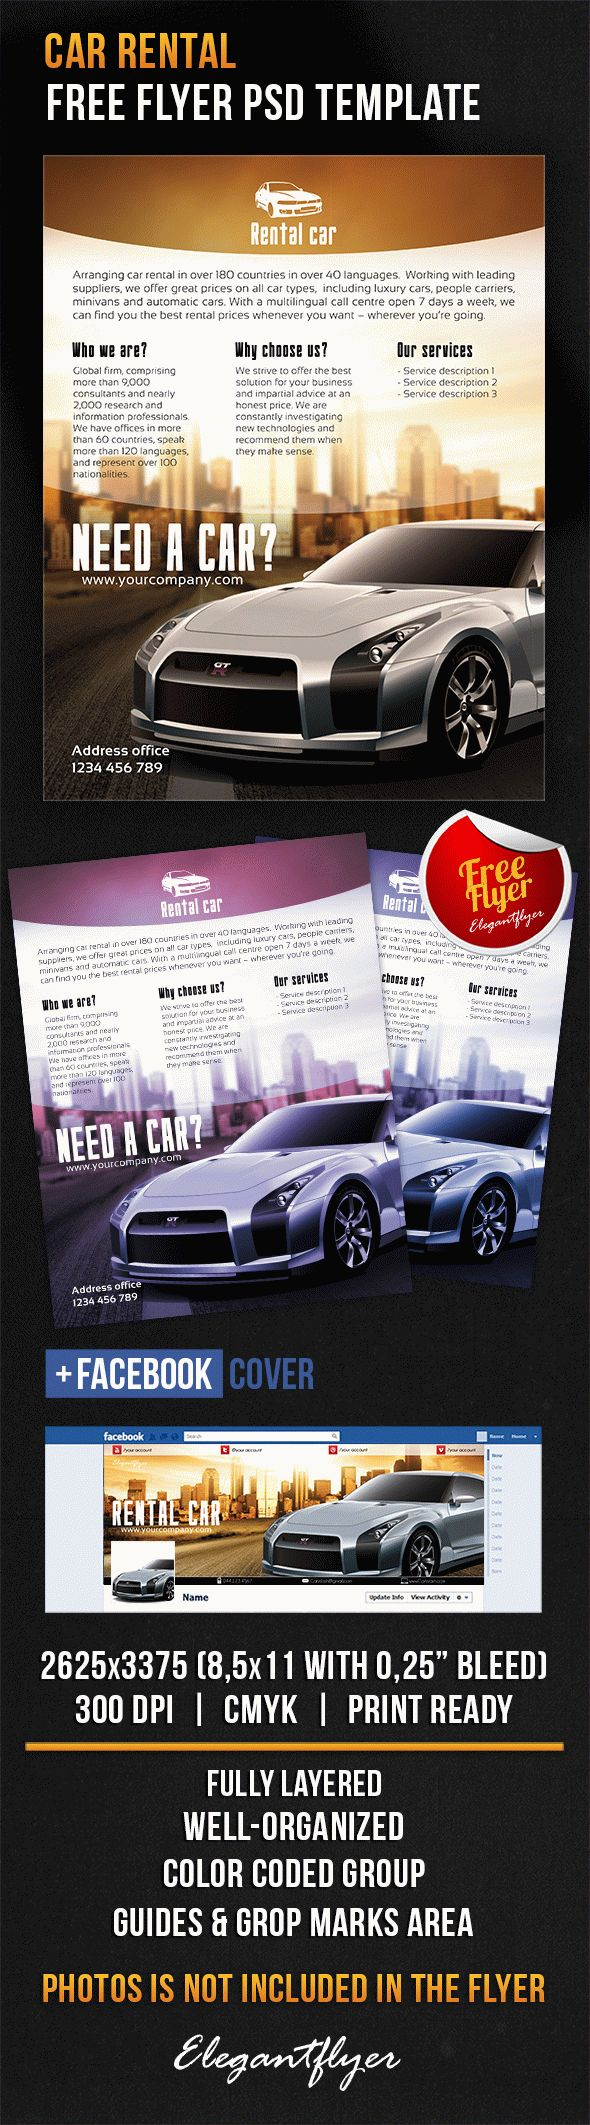 Car Rental – Free Flyer PSD Template + Facebook Cover